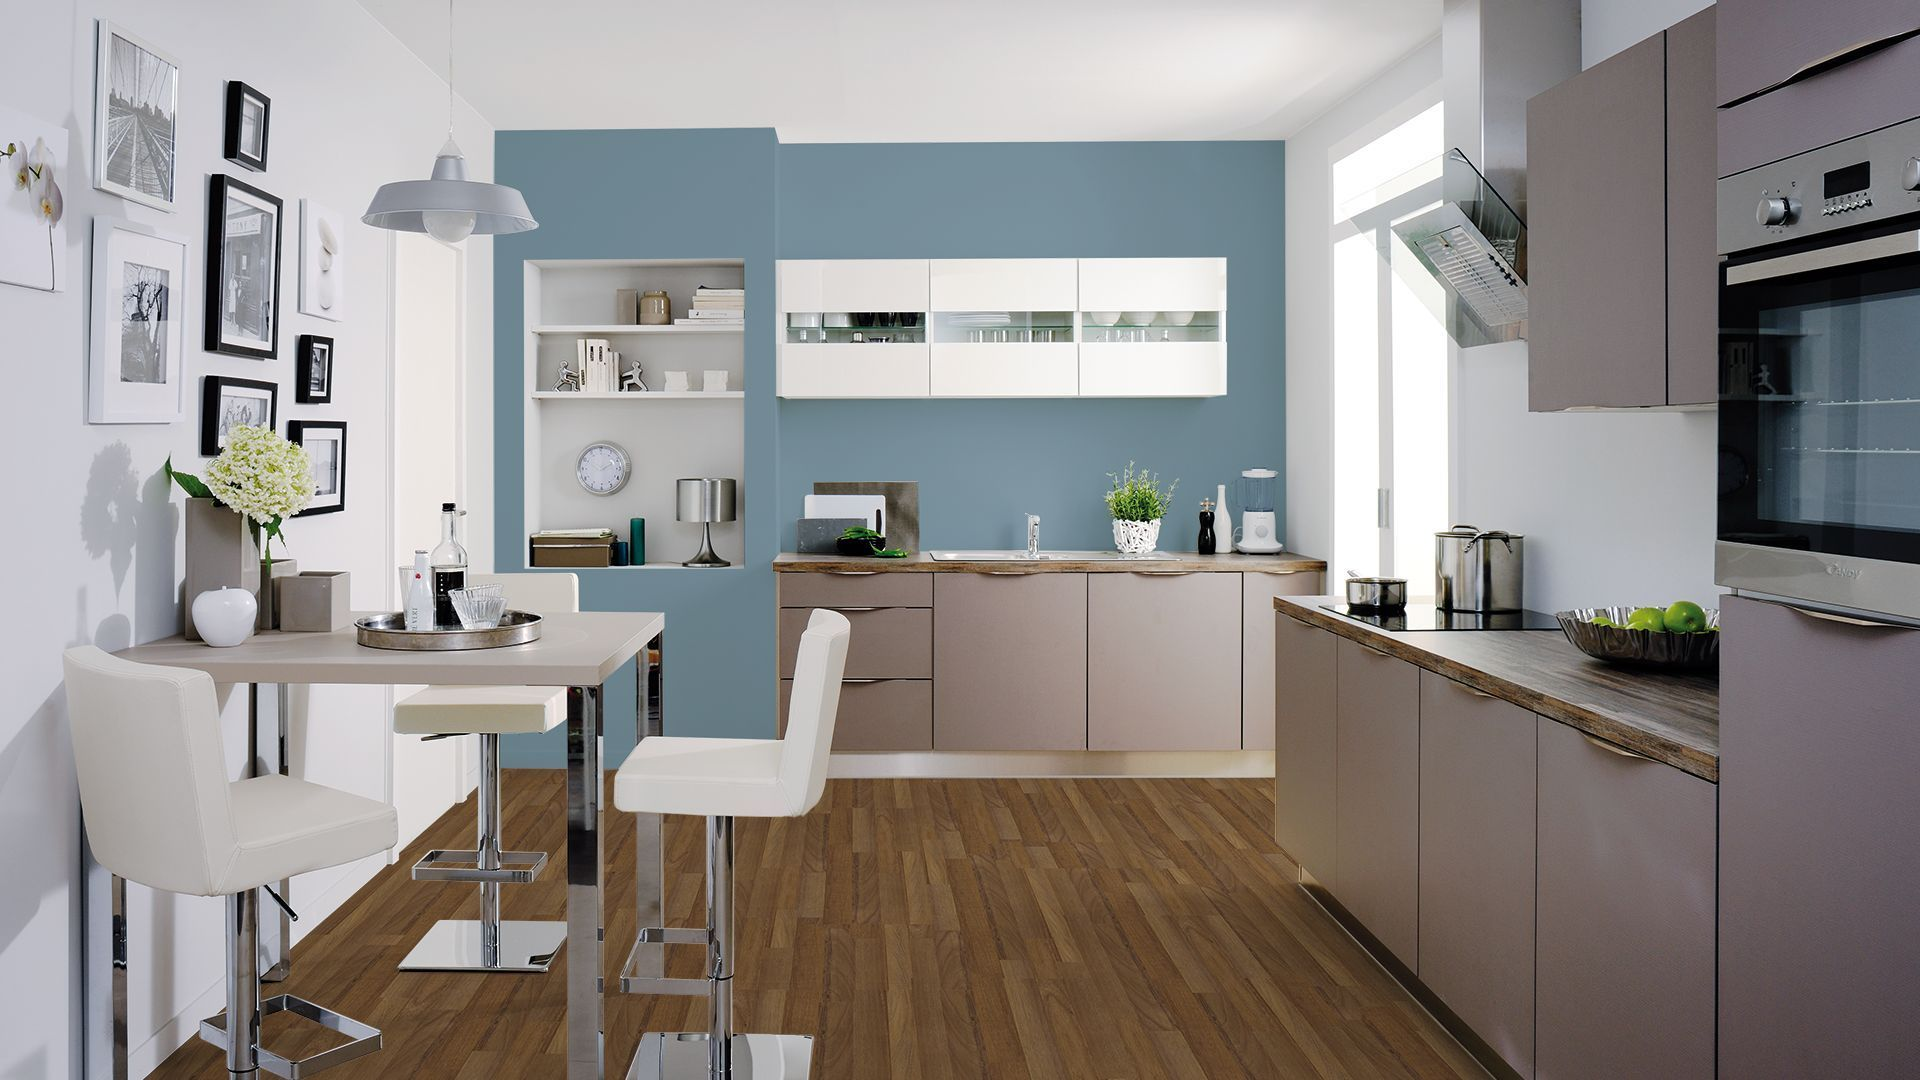 bleu et taupe | carrelage | Pinterest | Cuisine, Kitchen and Taupe